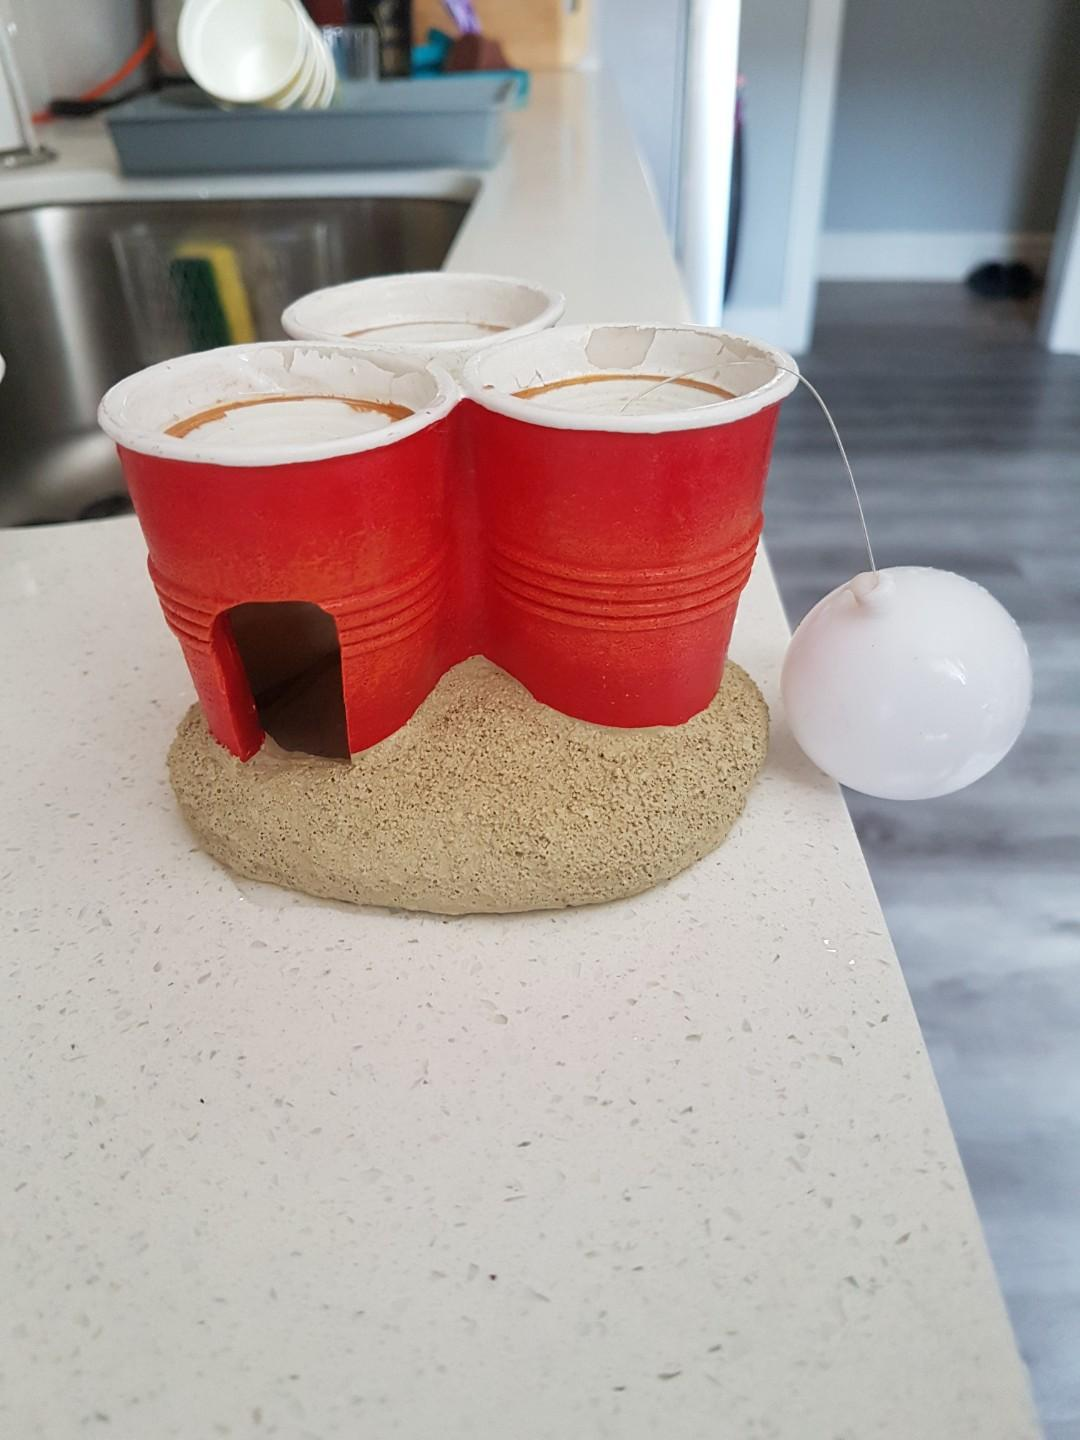 Aquarium Ornament/Decoration: Fish Hide Home, Beer Pong Cups with Floating Ball